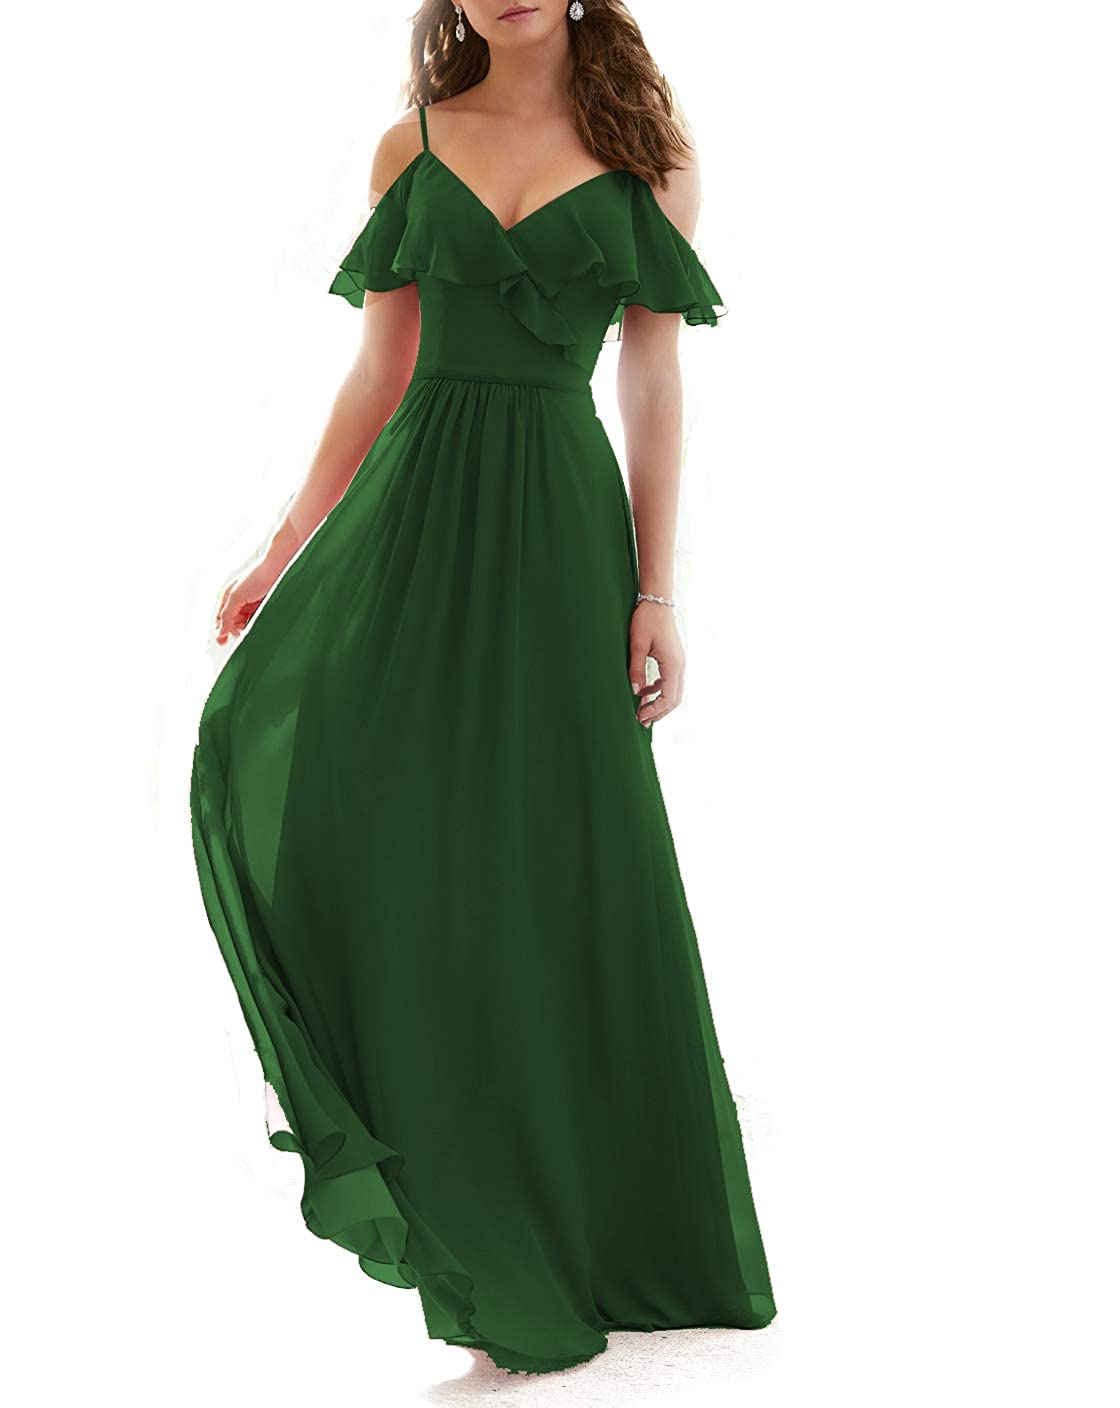 Emerald Green Stylefun Ruffled VNeckline Bridesmaid Gowns Spaghetti Straps Long Prom Party Dress for Women's KN003